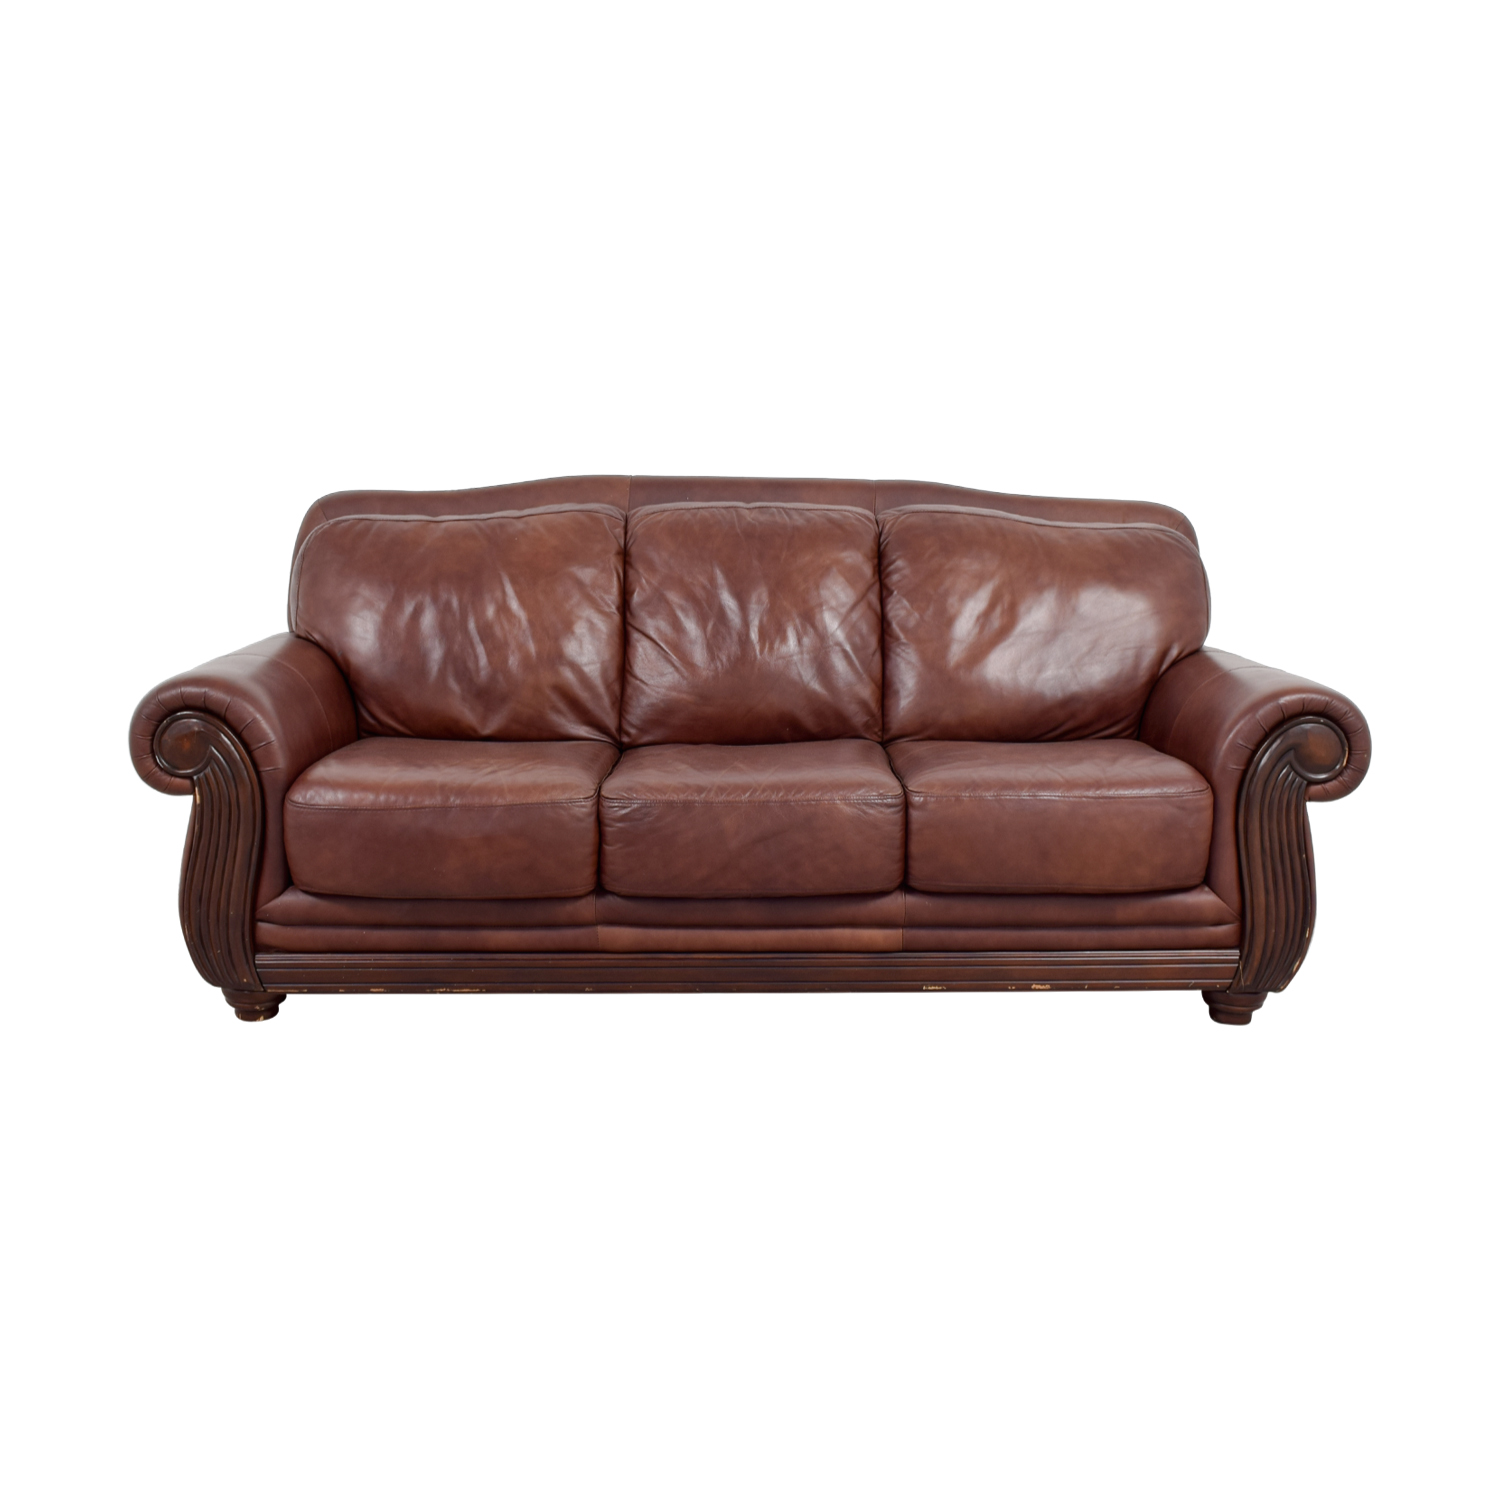 Rooms To Go Rooms To Go Brown Three -Cushion Leather Couch dimensions